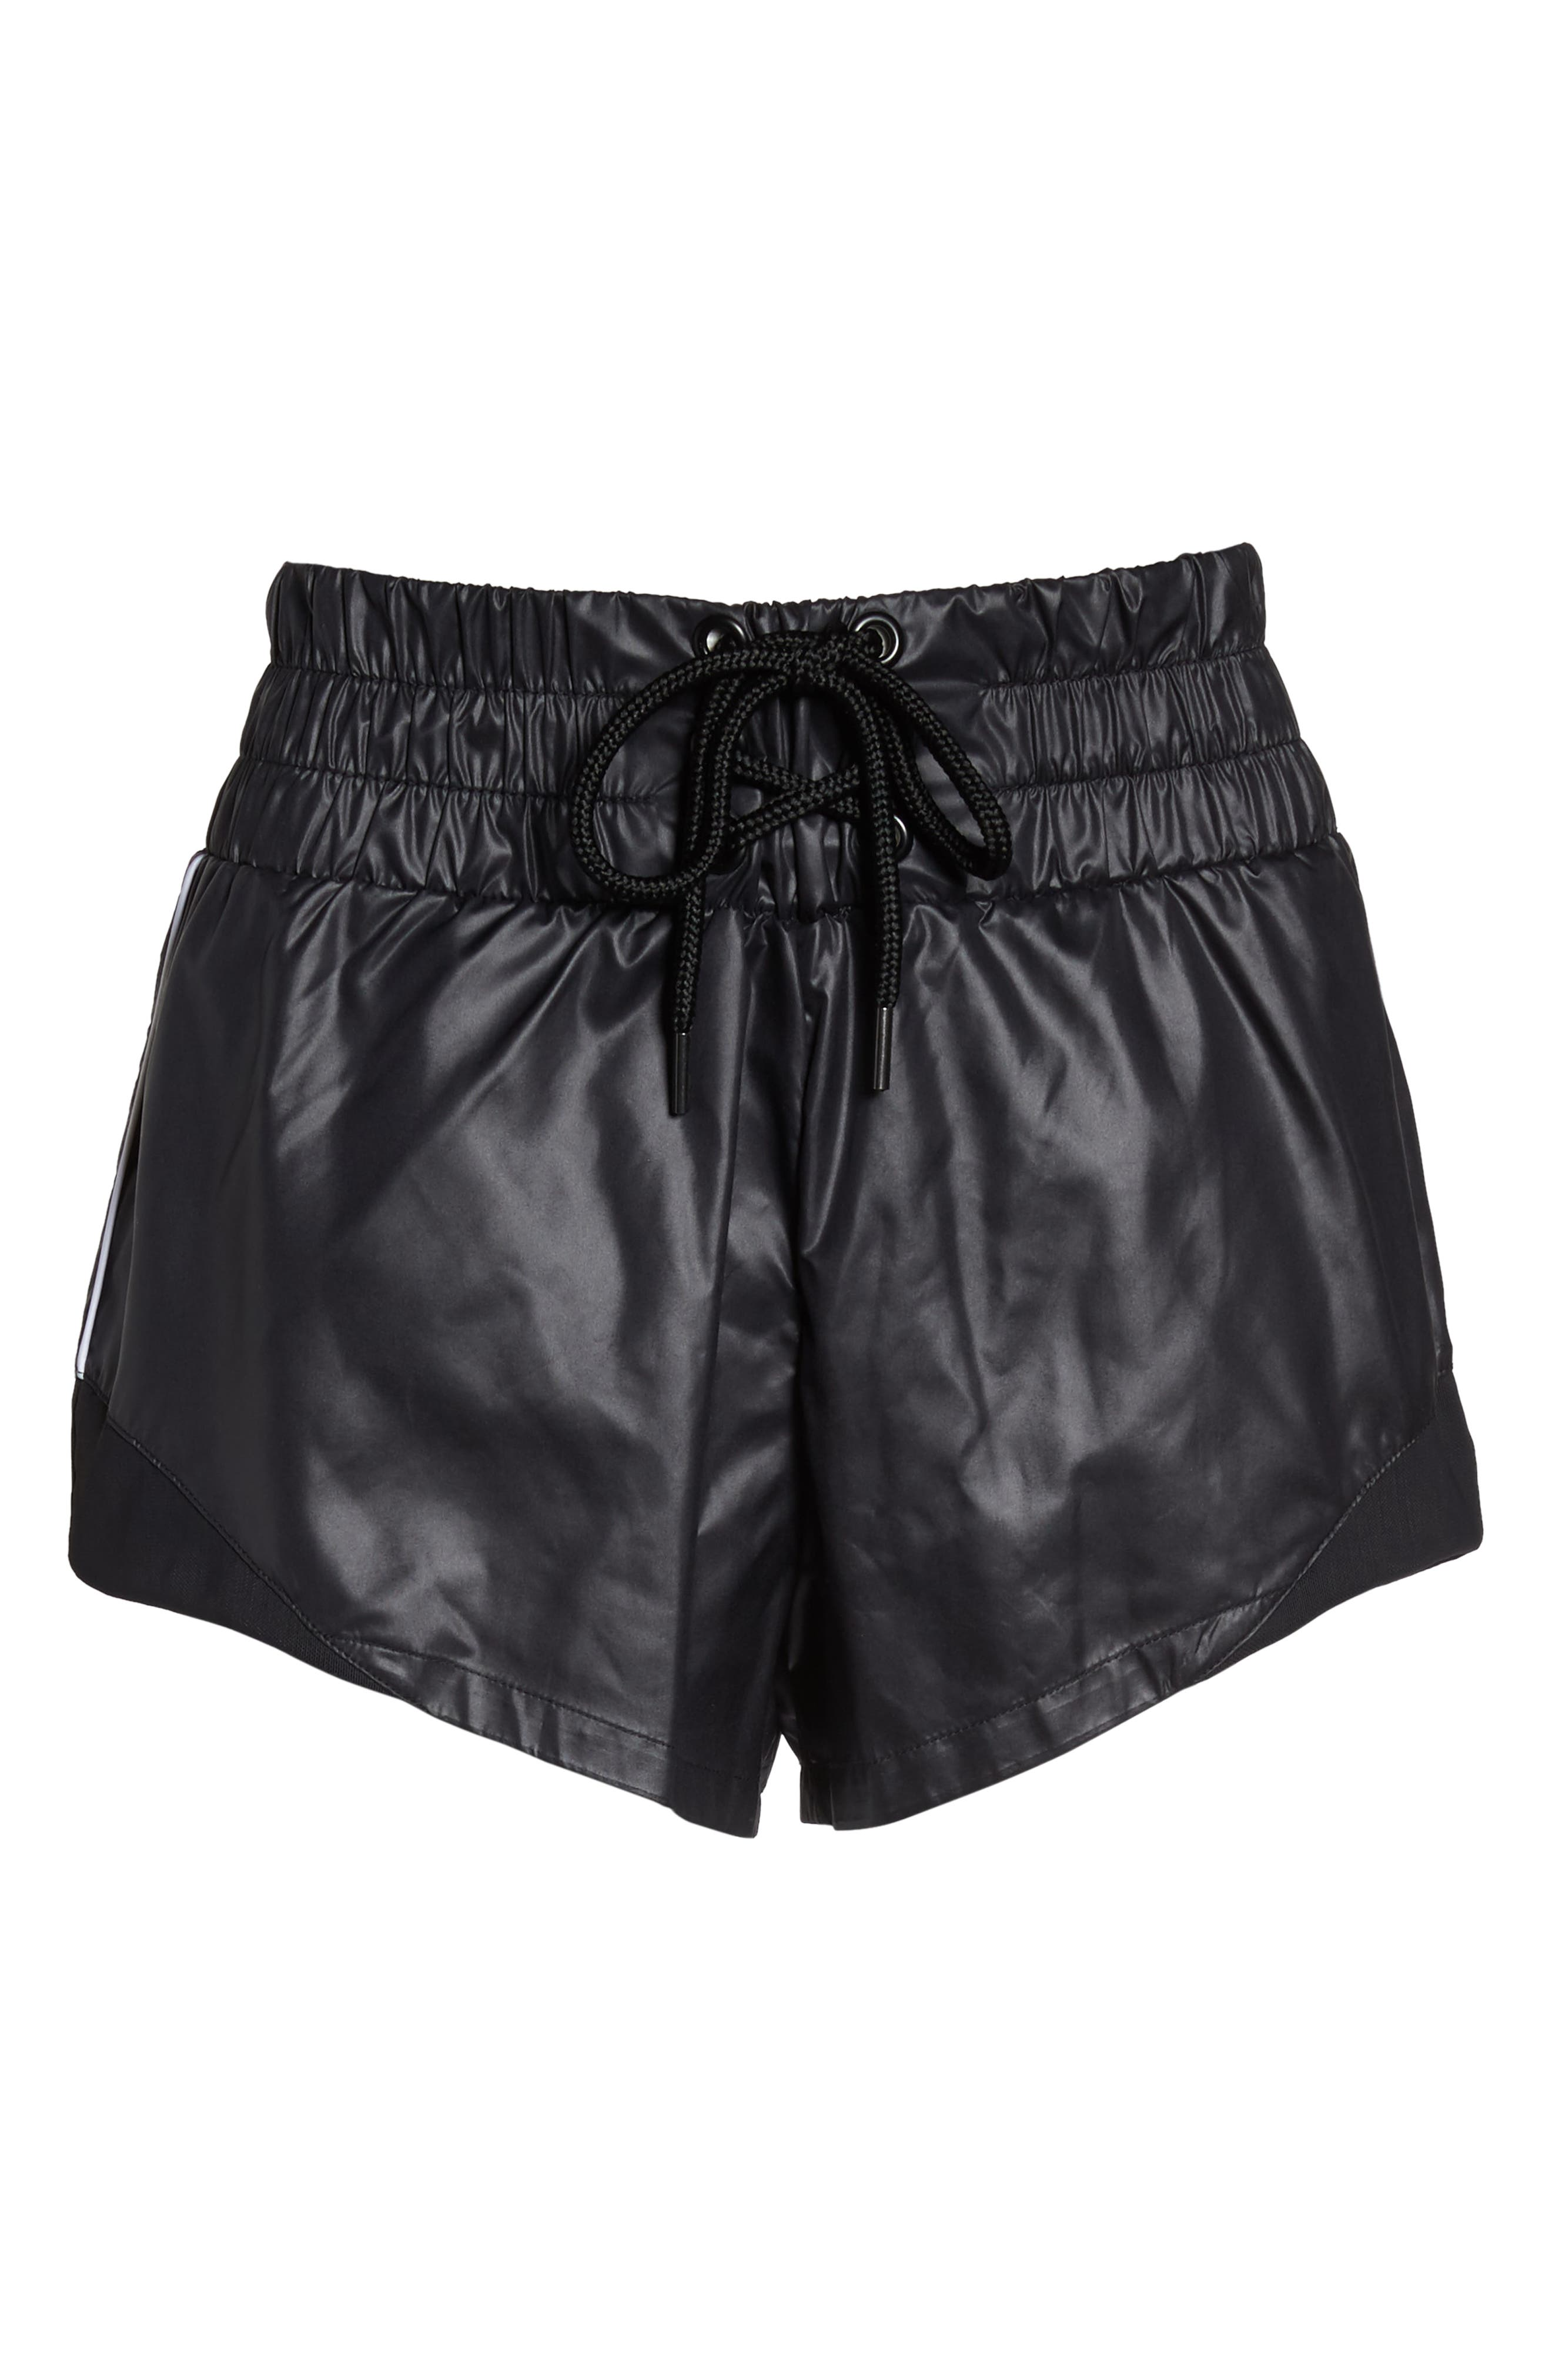 Boxer Babe Shorts,                             Alternate thumbnail 7, color,                             001